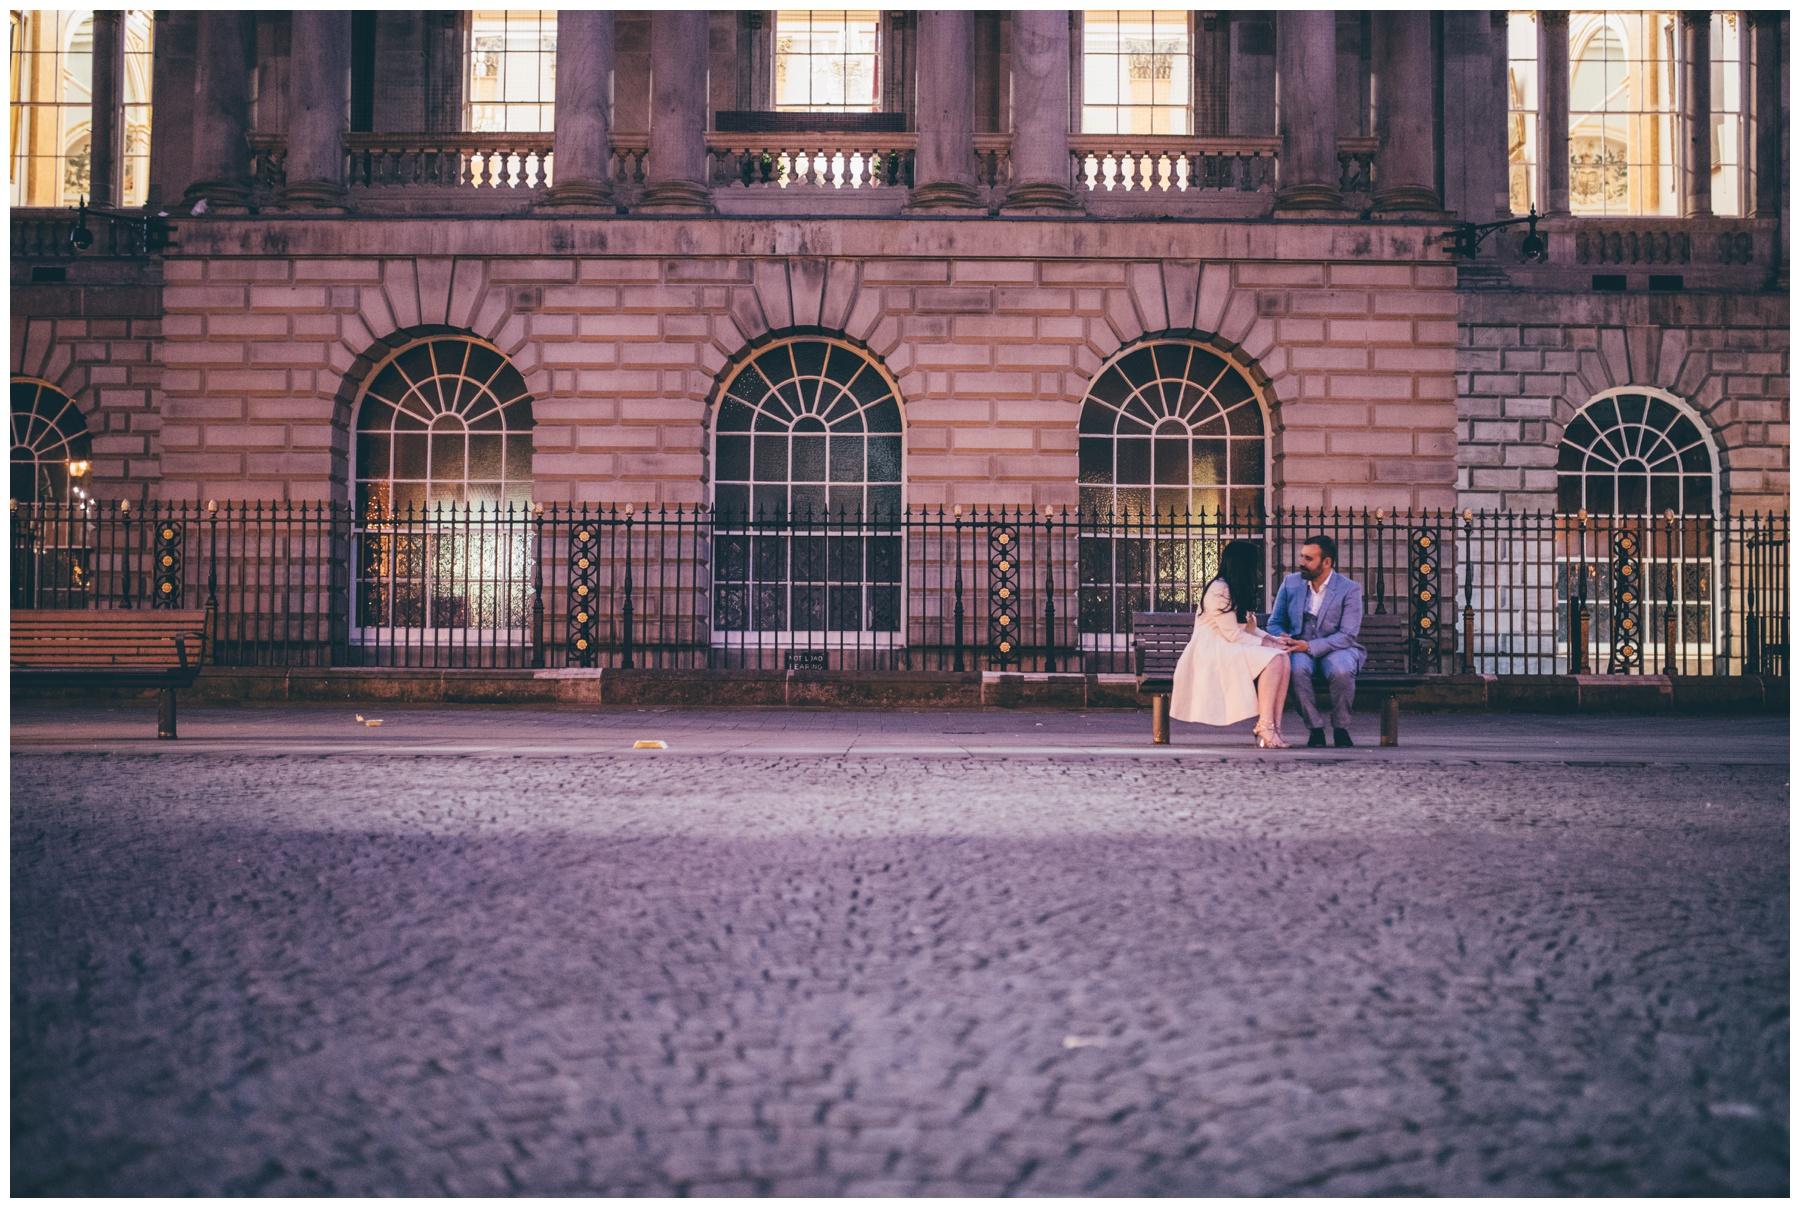 Bride and Groom share a special moment at Exchange Flags in Liverpool wedding.